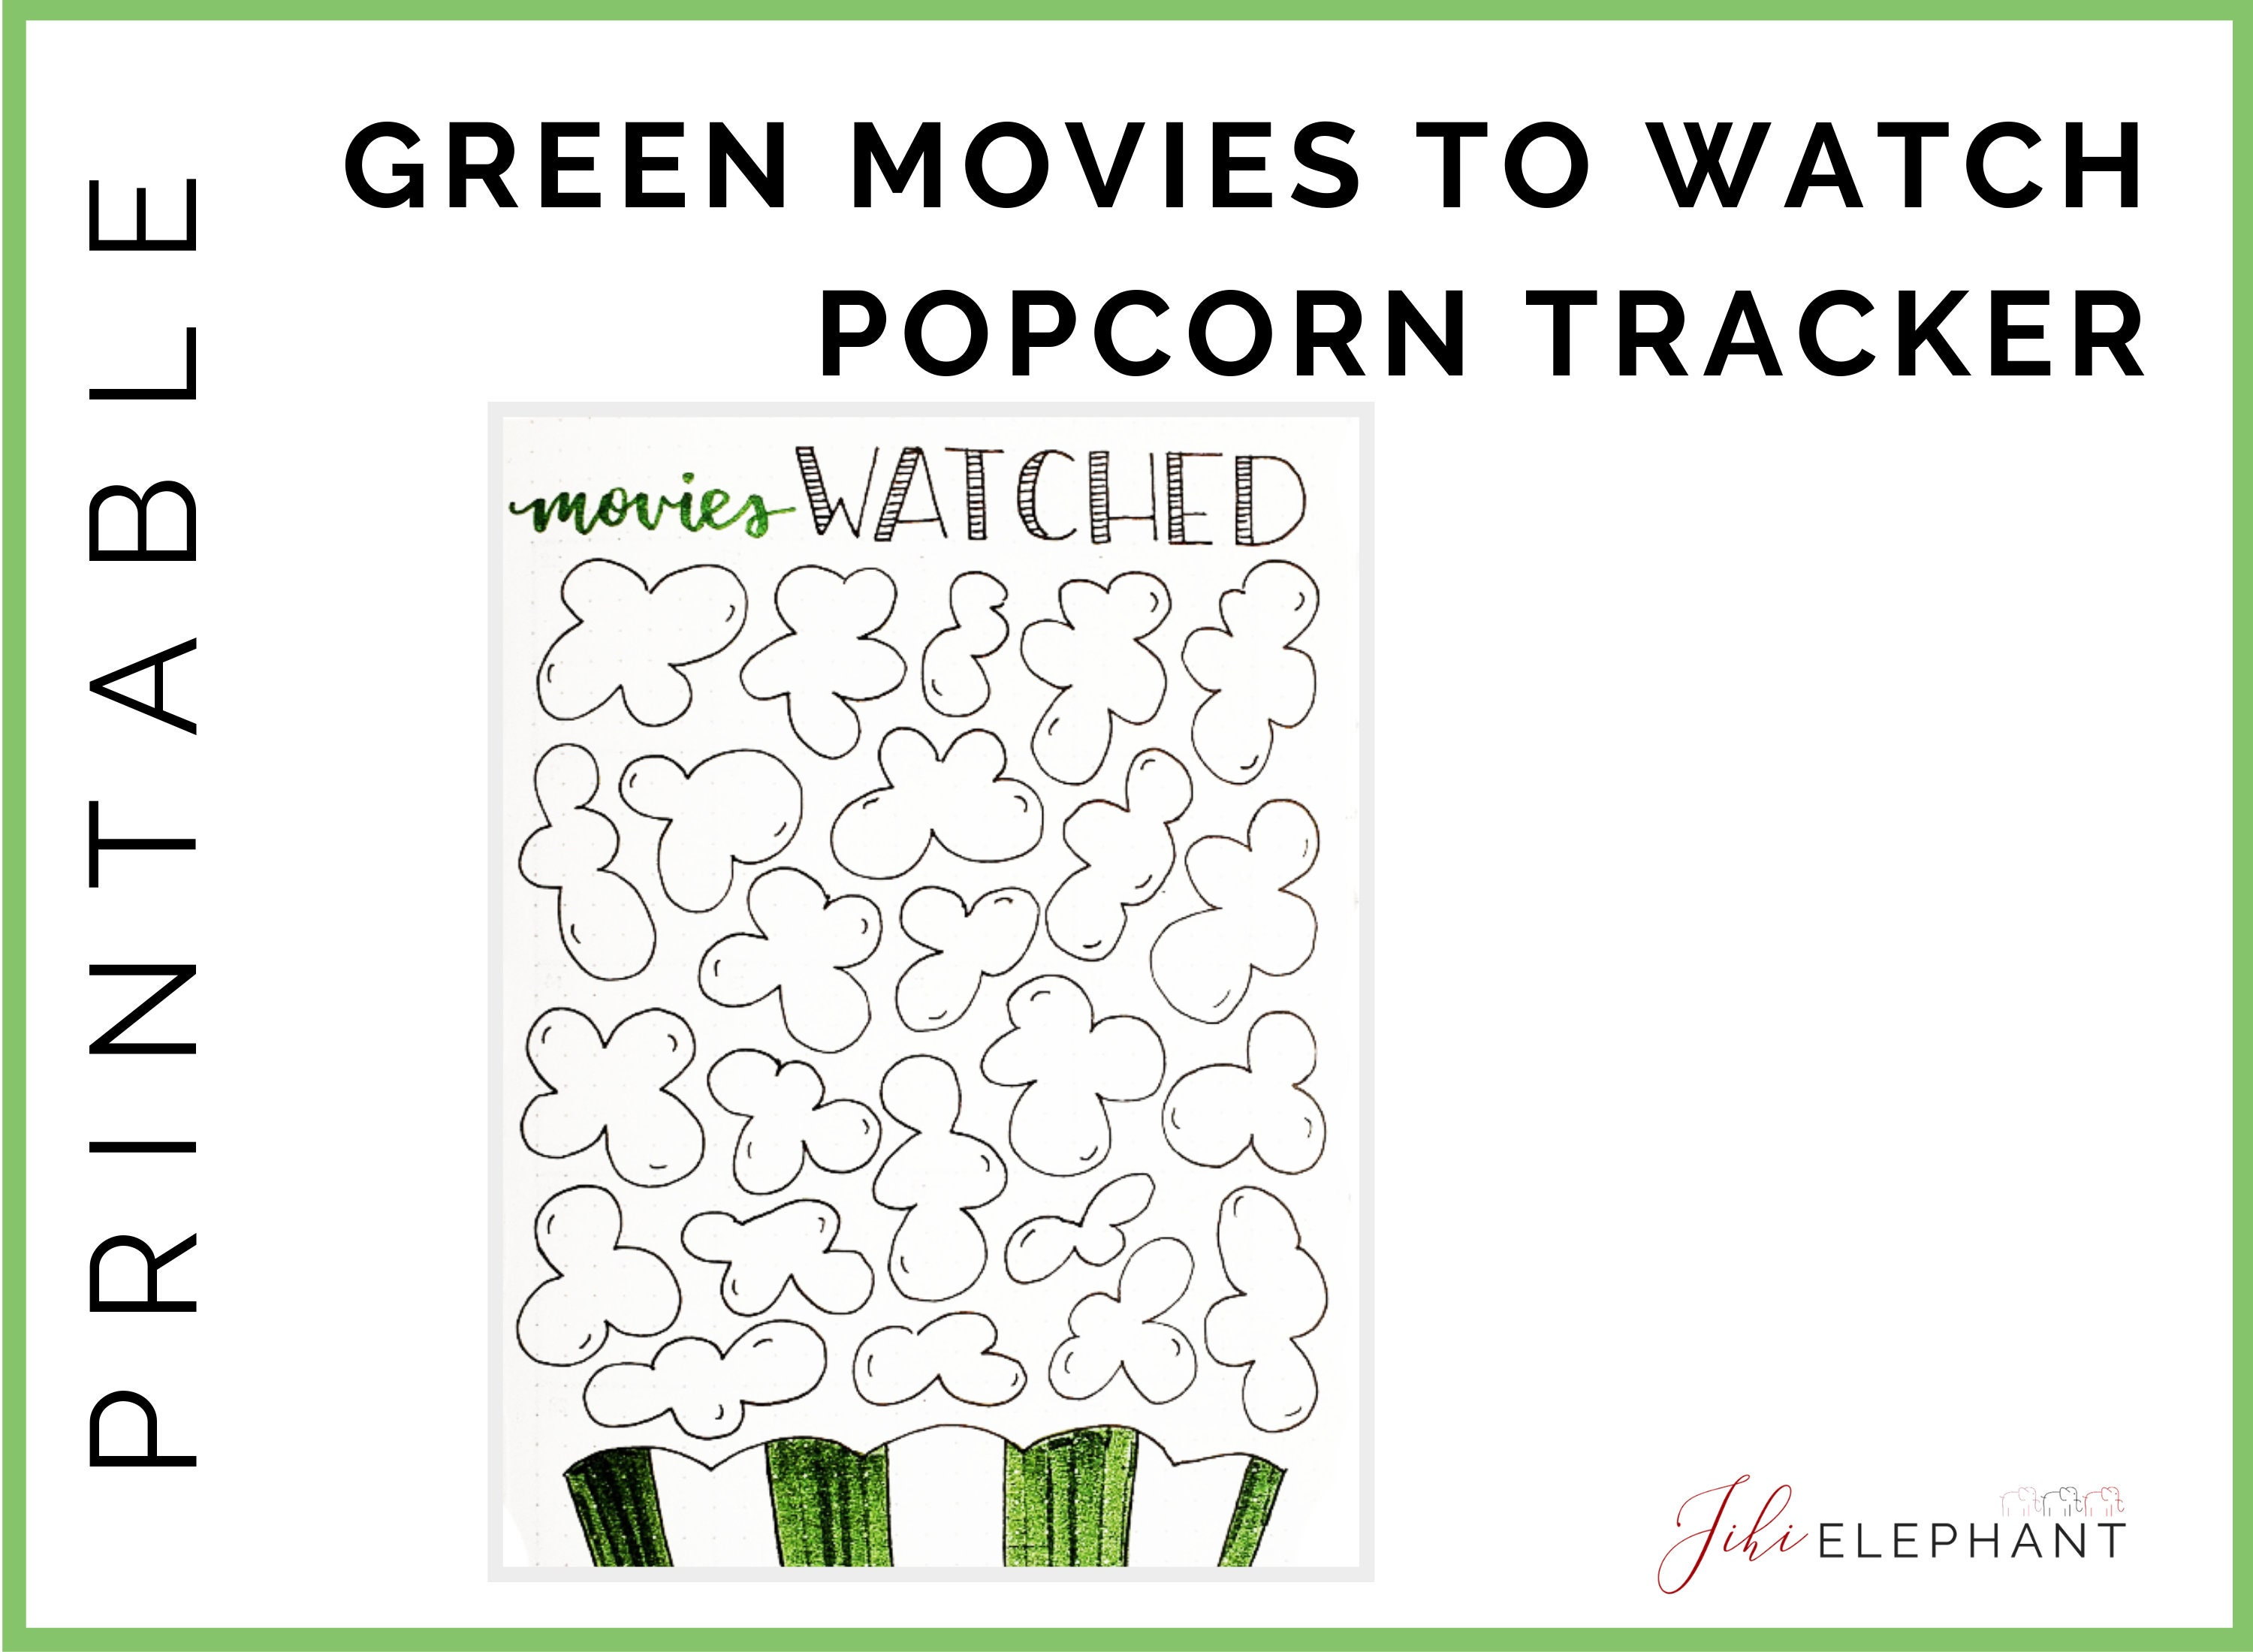 photograph regarding Popcorn Bag Printable referred to as Printable Films toward See Range Style and design Popcorn Bag Kernels Environmentally friendly  A5 Dimensions Downloadable